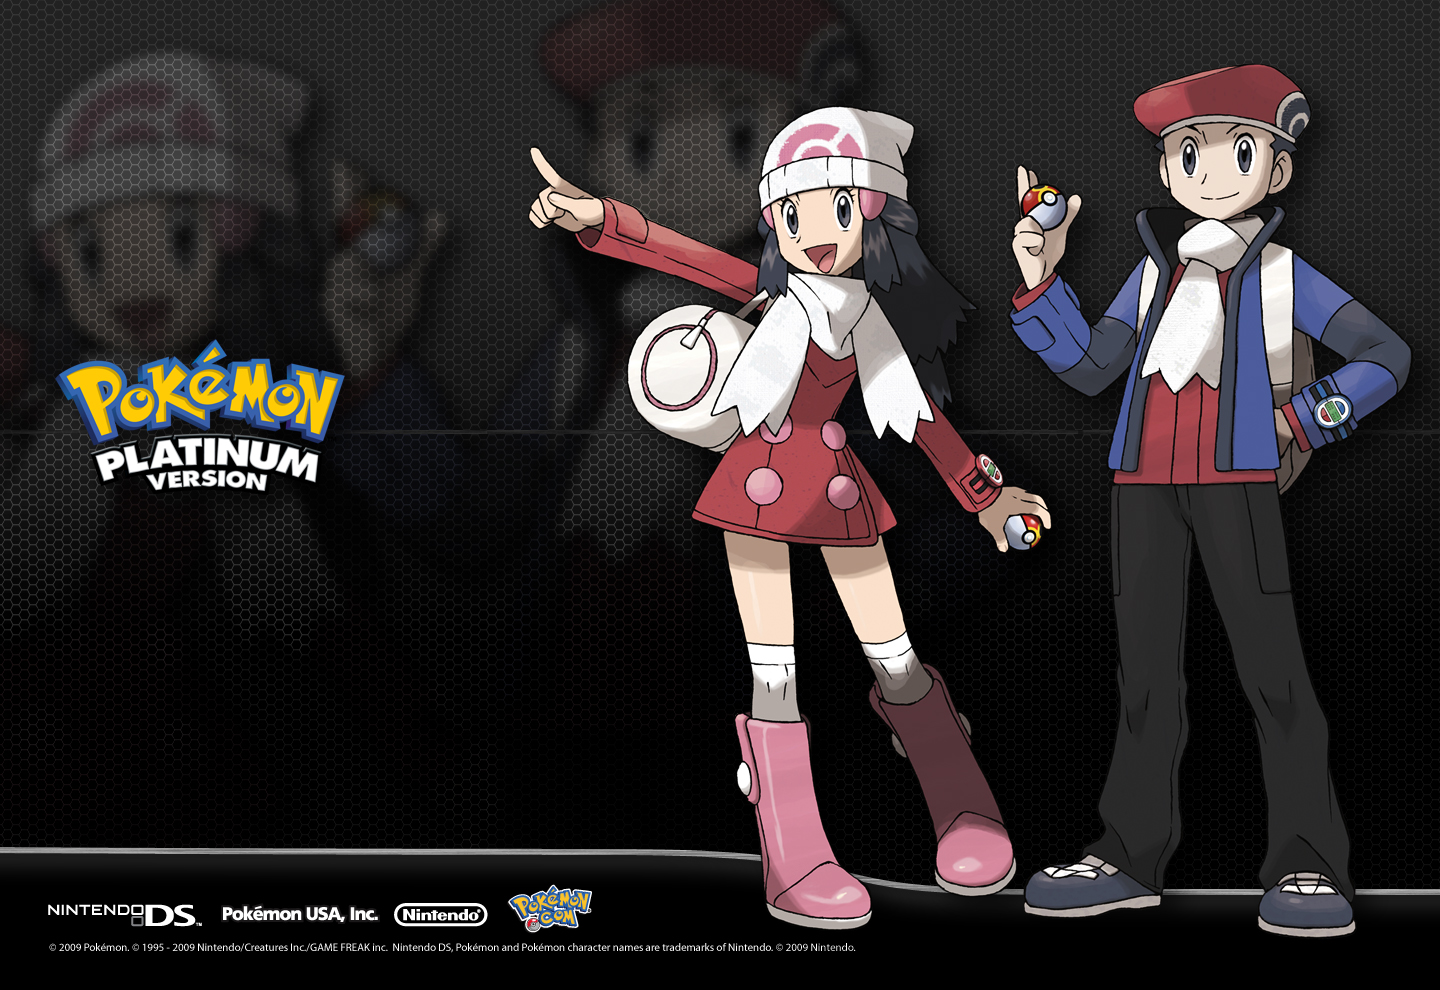 pokemon platinum version the official pokemon guide